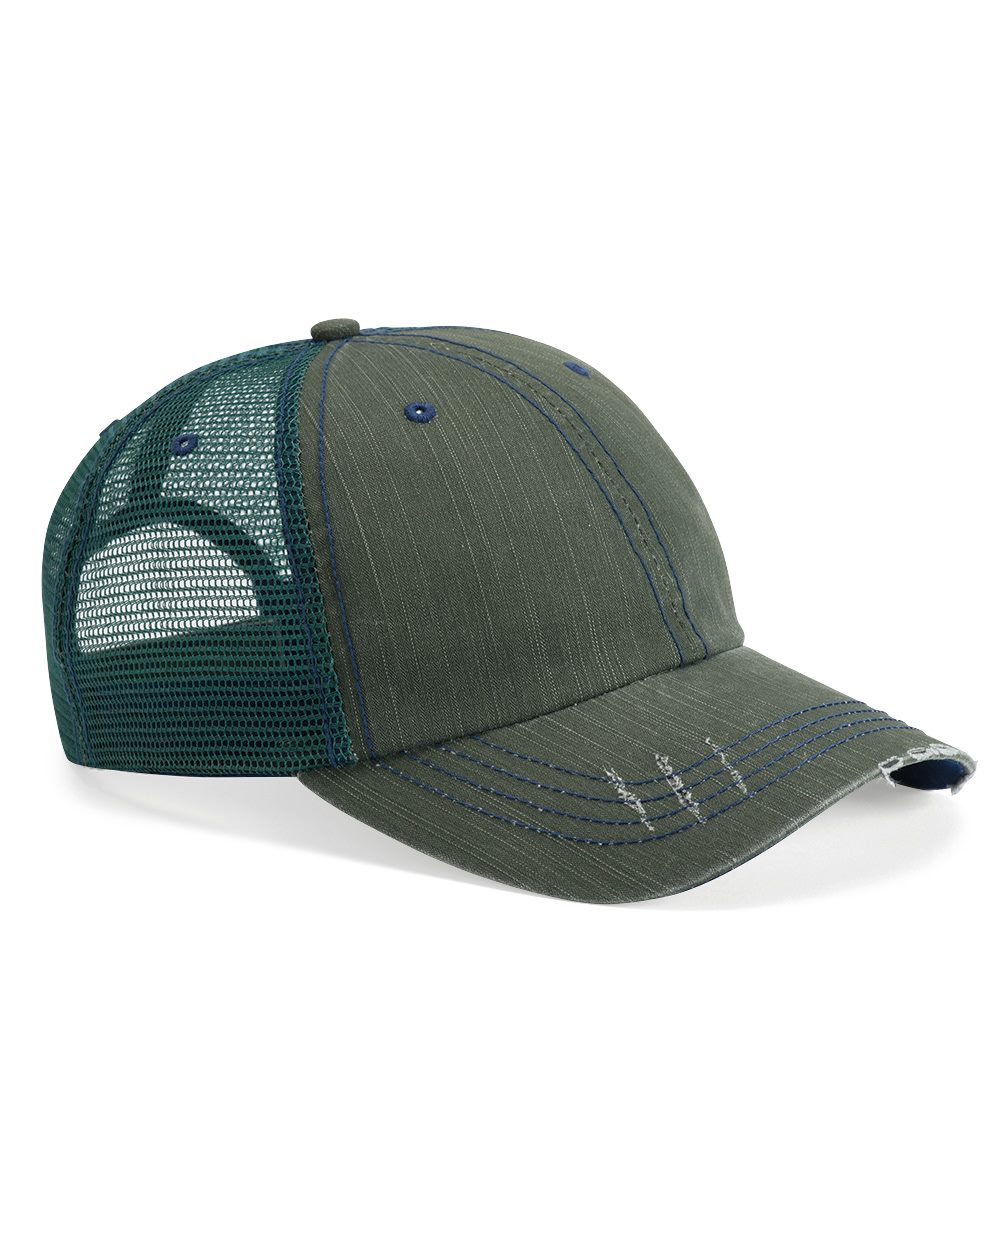 Mega Cap 6990 - Herringbone Unstructured Trucker Cap